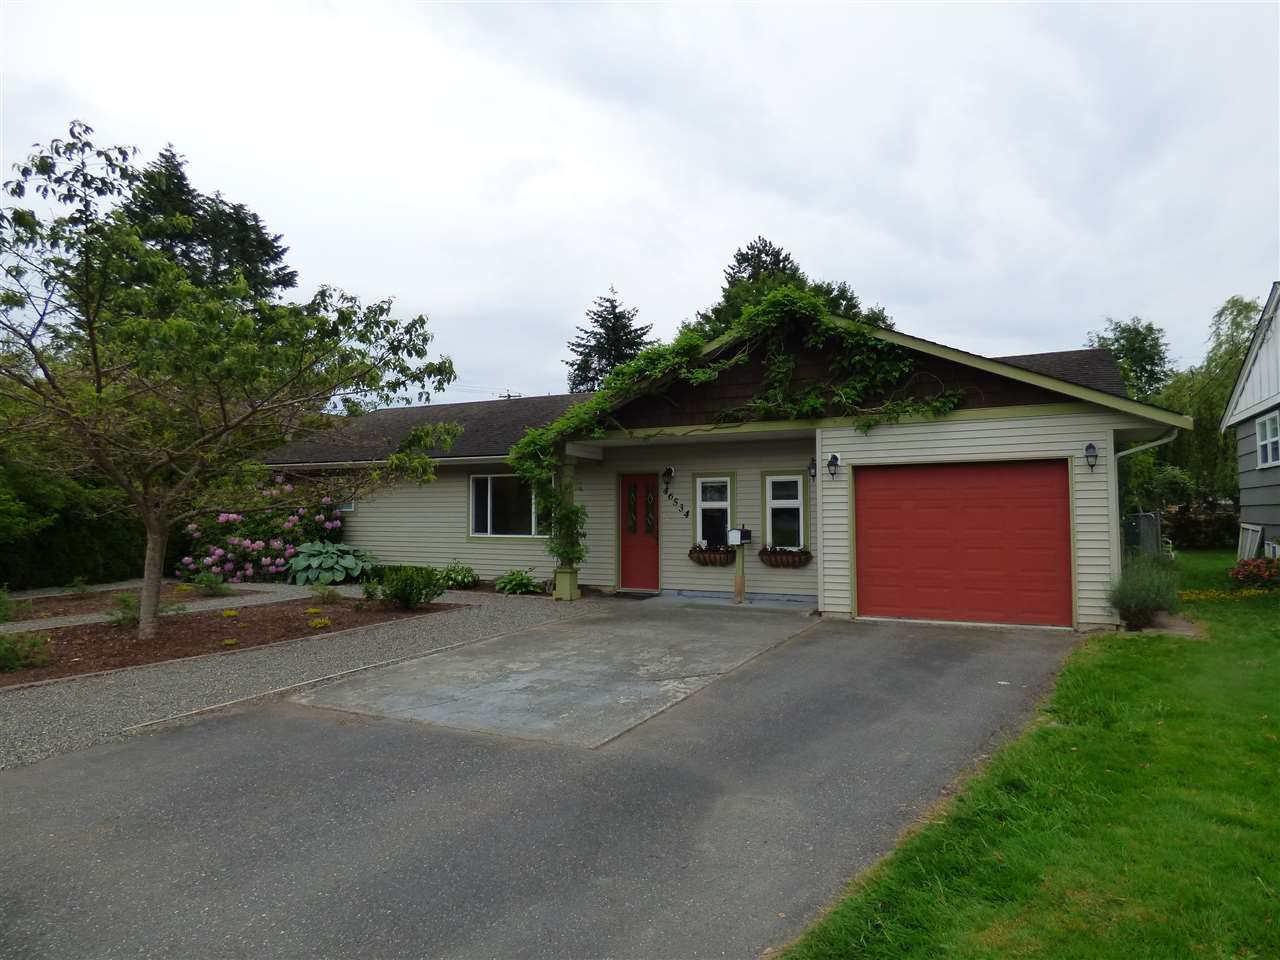 Main Photo: 46534 RIVERSIDE Drive in Chilliwack: Chilliwack N Yale-Well House for sale : MLS®# R2172736